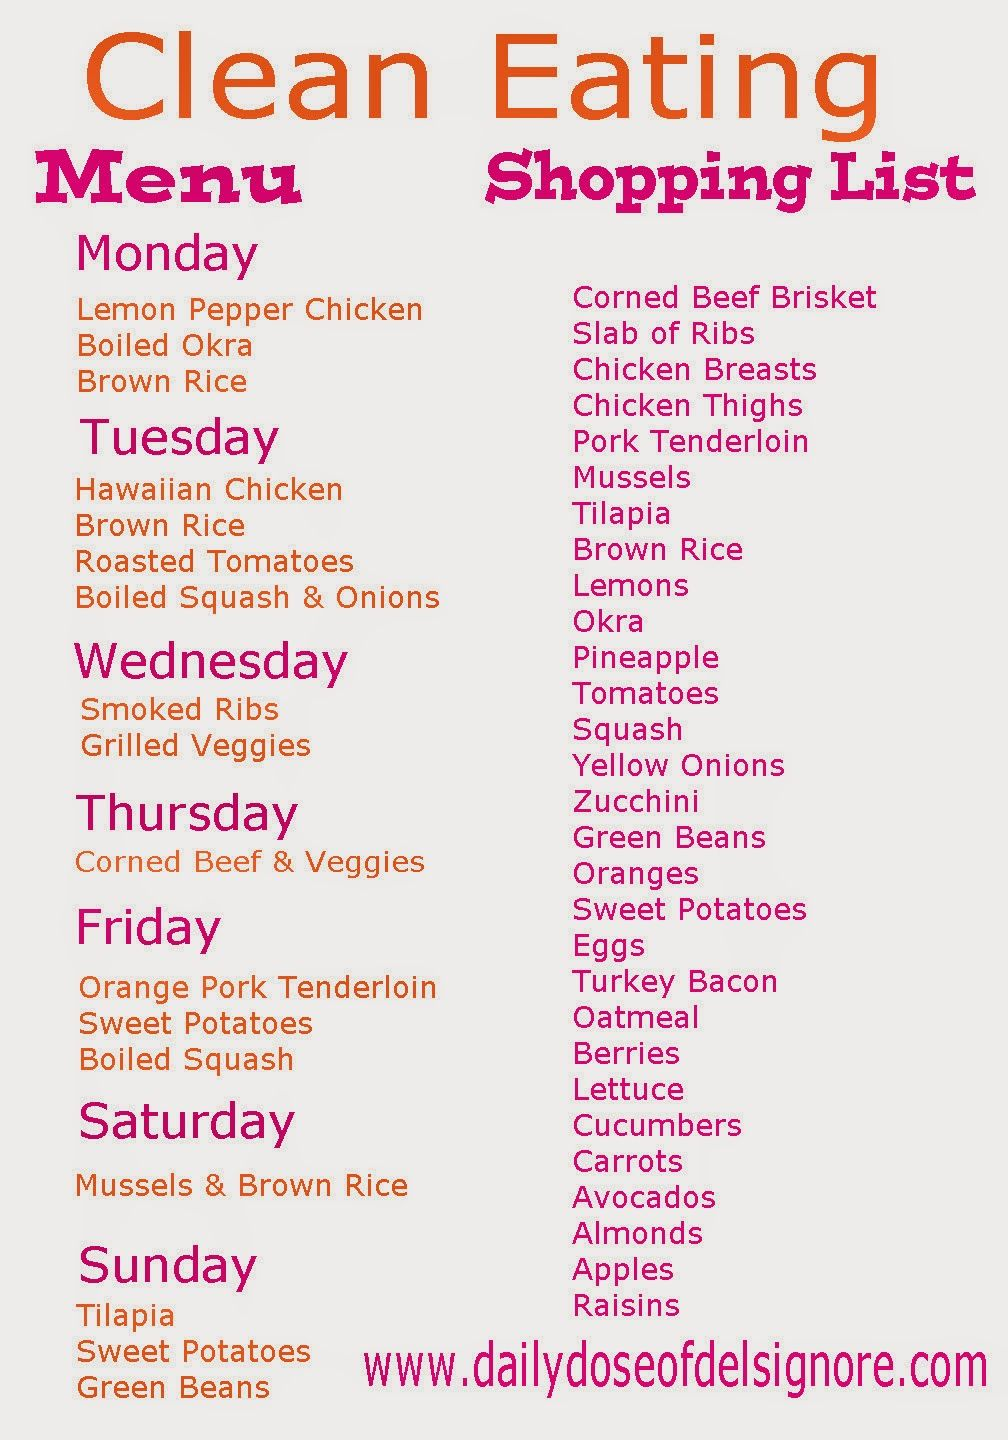 Improve Your Diet & Health with a Clean Eating Meal Plan